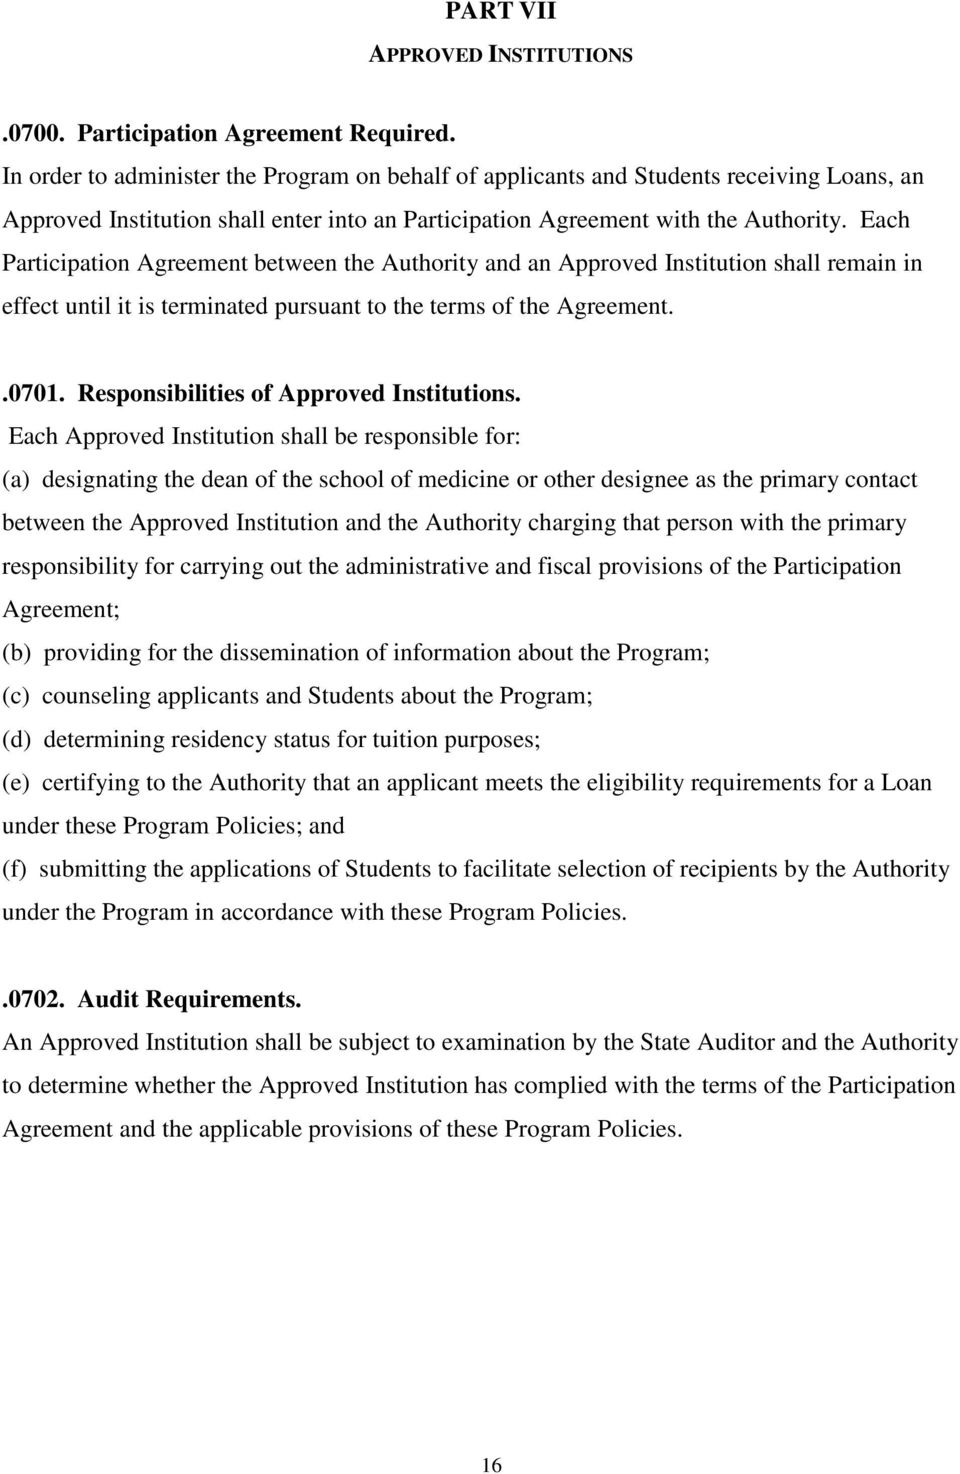 Each Participation Agreement between the Authority and an Approved Institution shall remain in effect until it is terminated pursuant to the terms of the Agreement..0701.